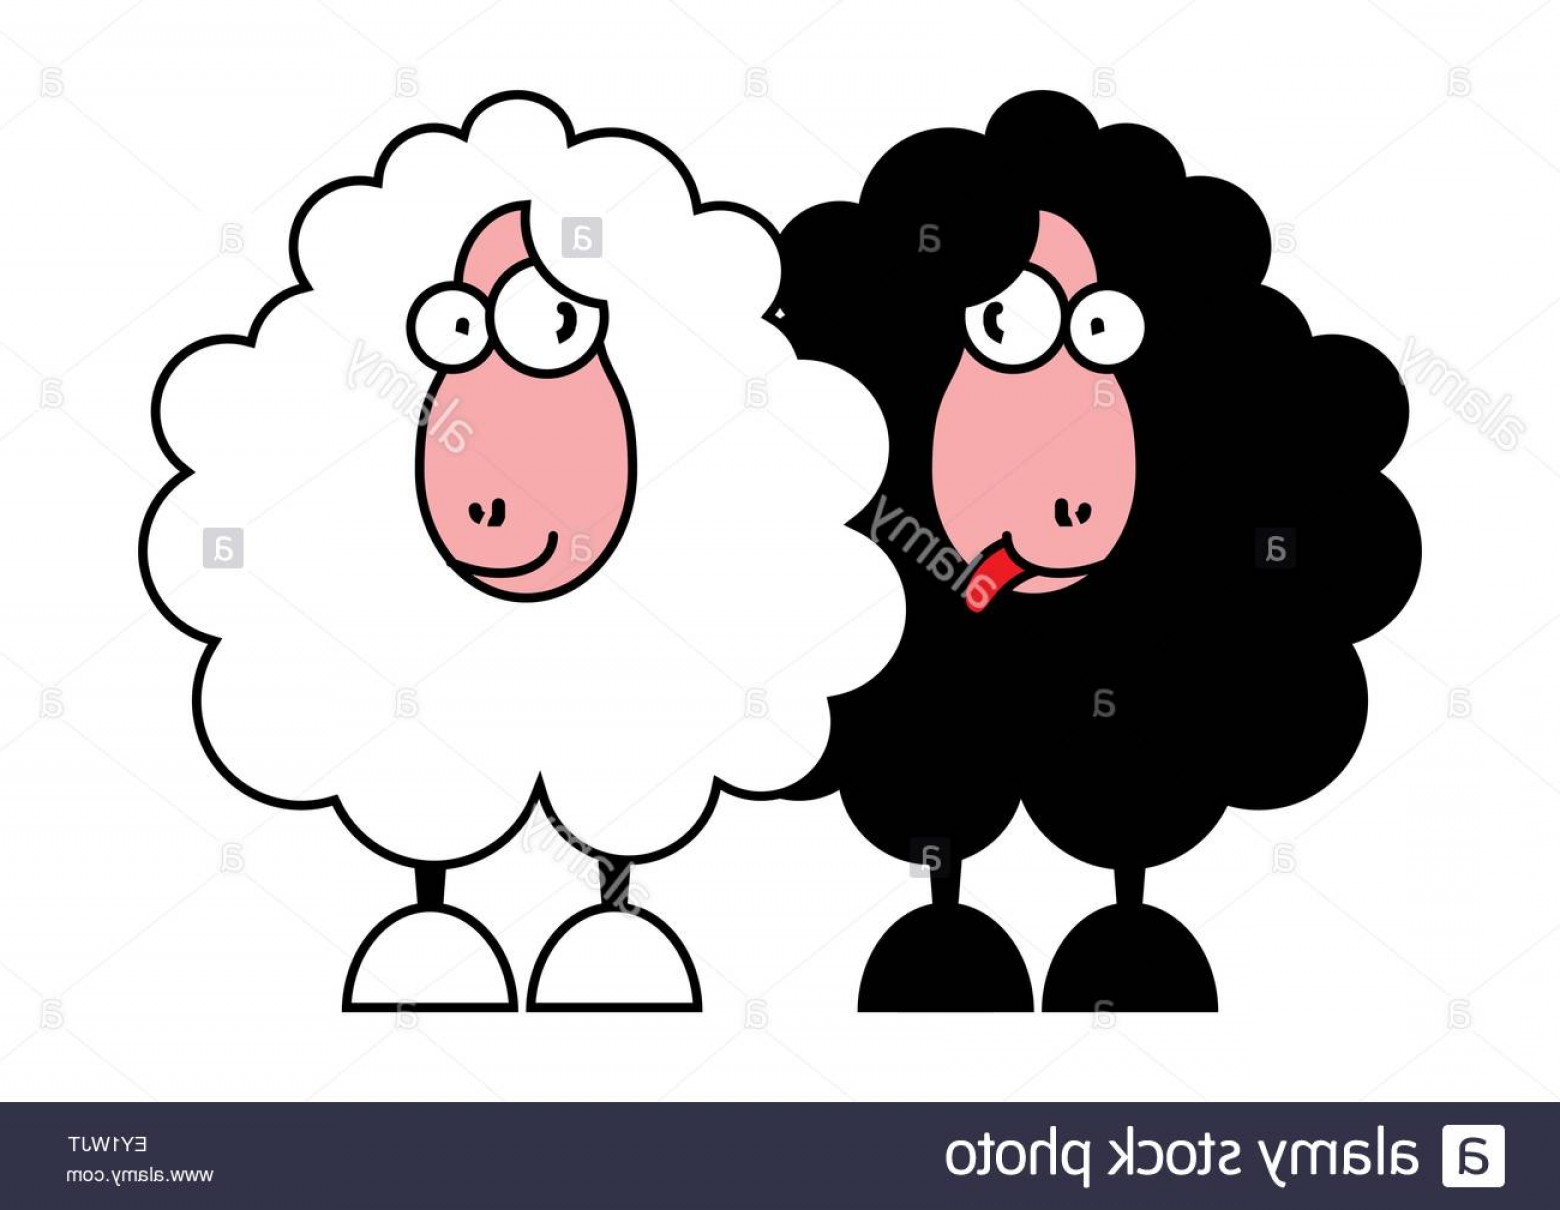 Funny Black And White Vector: Stock Photo Funny Black And White Sheeps Vector Illustration